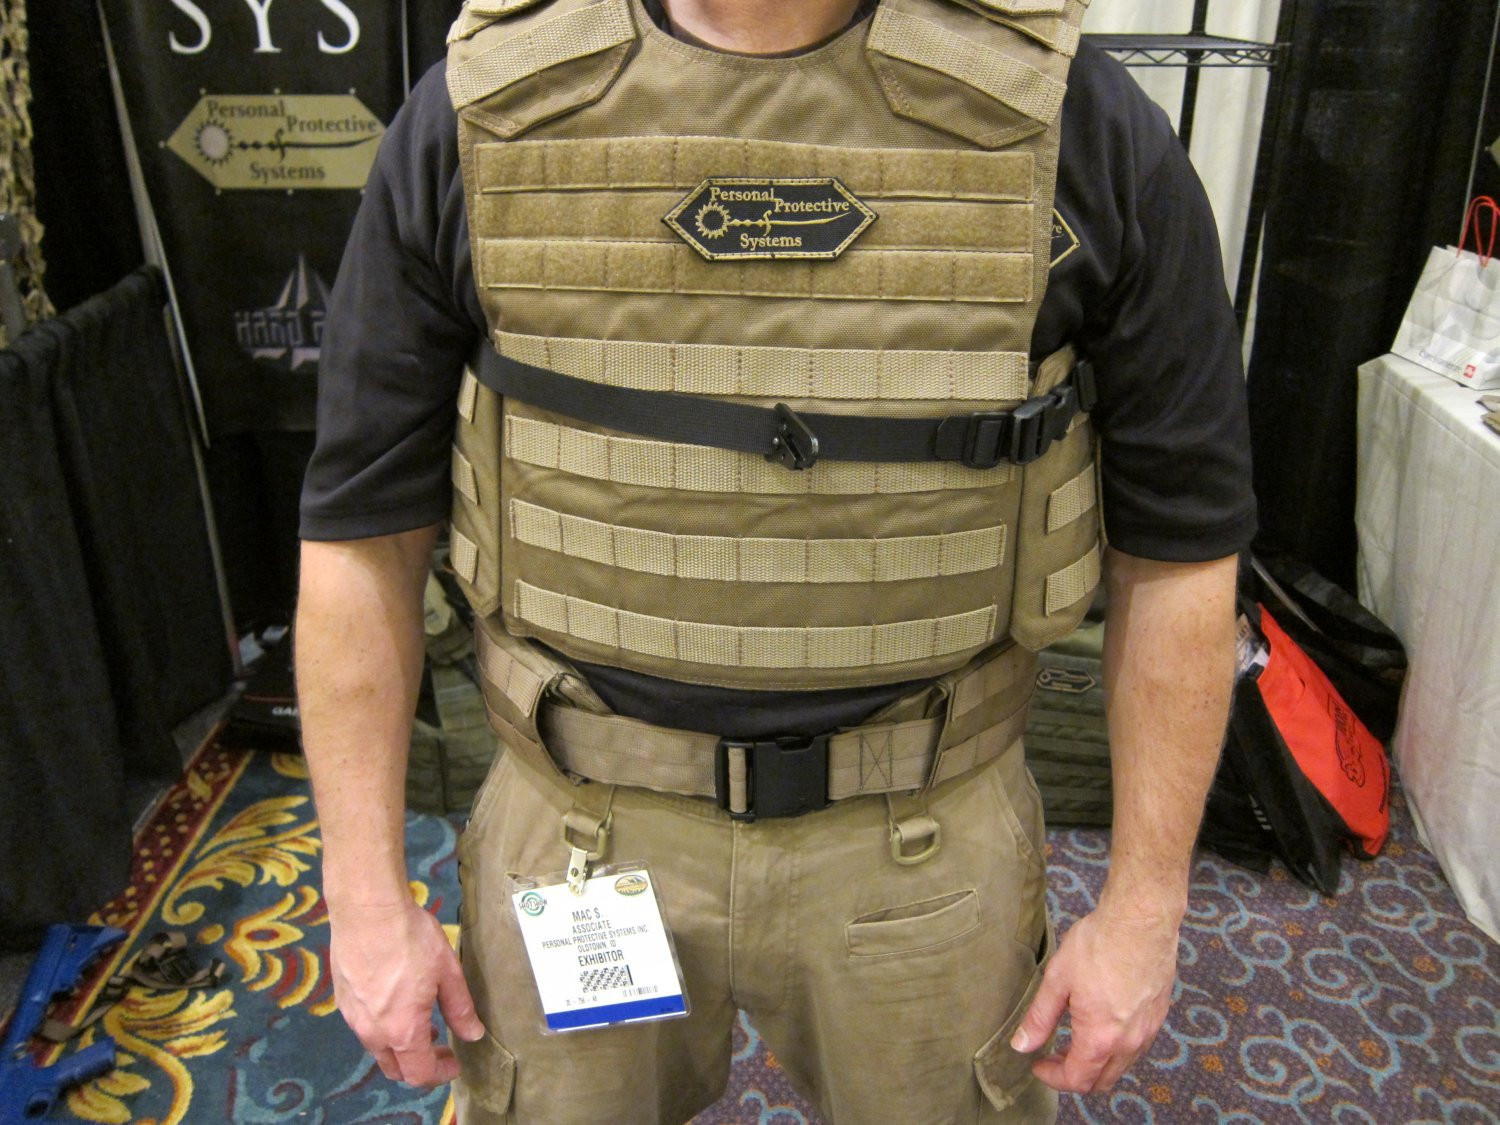 P2 Systems P2Sys Underarm Double Under Integra Sling and Integra Belt with Integral Armor Waist Supports Plastic Stays at SHOT Show 2011 3 <!  :en  >Hardpoint Equipment Tactical Armor Carriers (formerly Personal Protective Systems, or P2 Systems): Best Tactical Body Armor Plate Carriers on the Planet? DR Looks at the Latest Hard Point Hard Armor Plate Carriers, Battle Belt, MOLLE Backpack System, and Passive Ventilation Channels/Removable Padding System at SHOT Show 2011 (Photos and Video!) <!  :  >